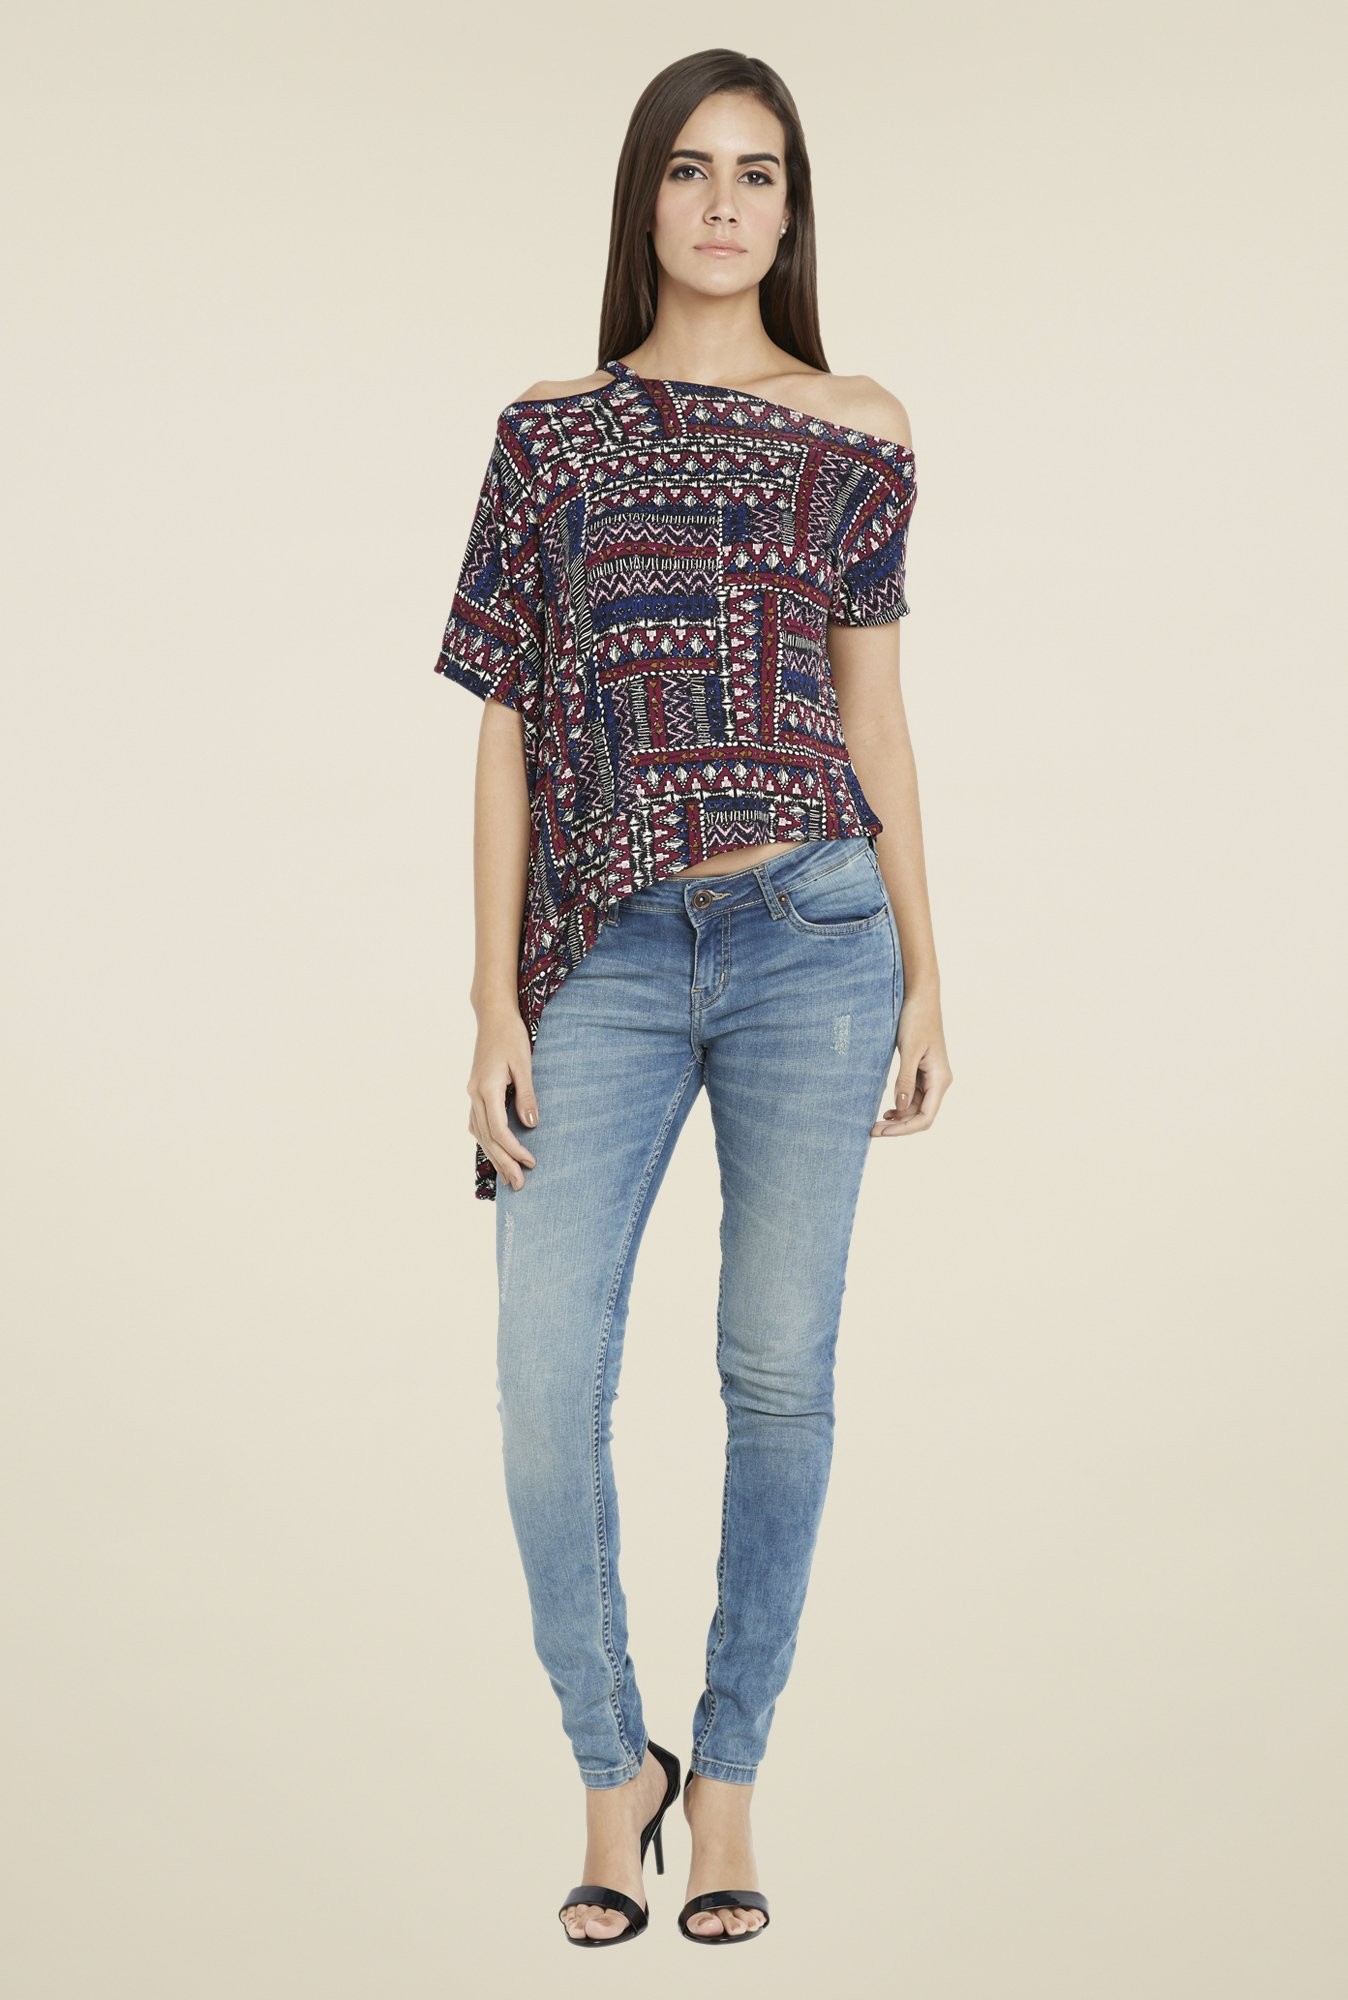 Globus Multicolor Abstract Print Top